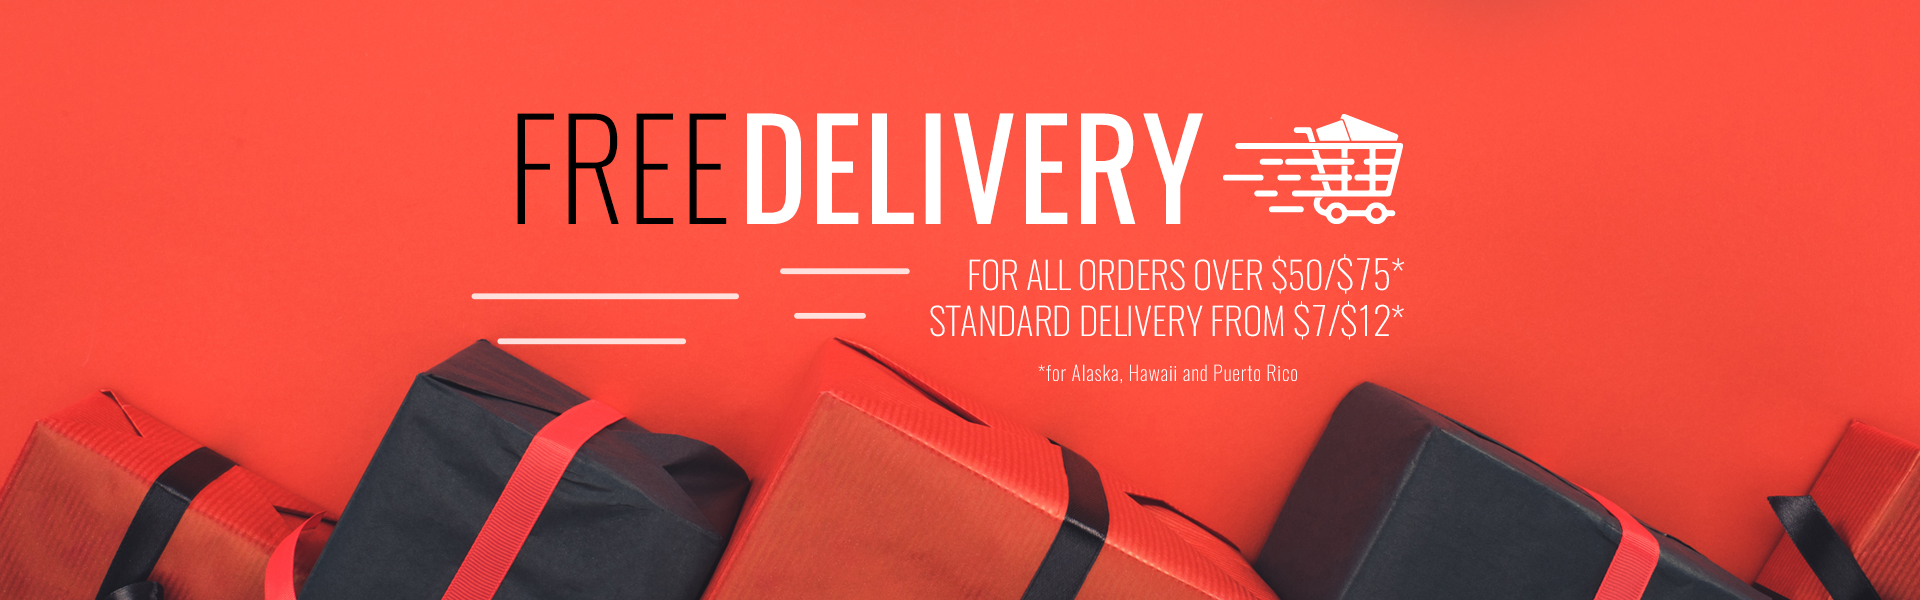 19-03-04-free-delivery---slider-us